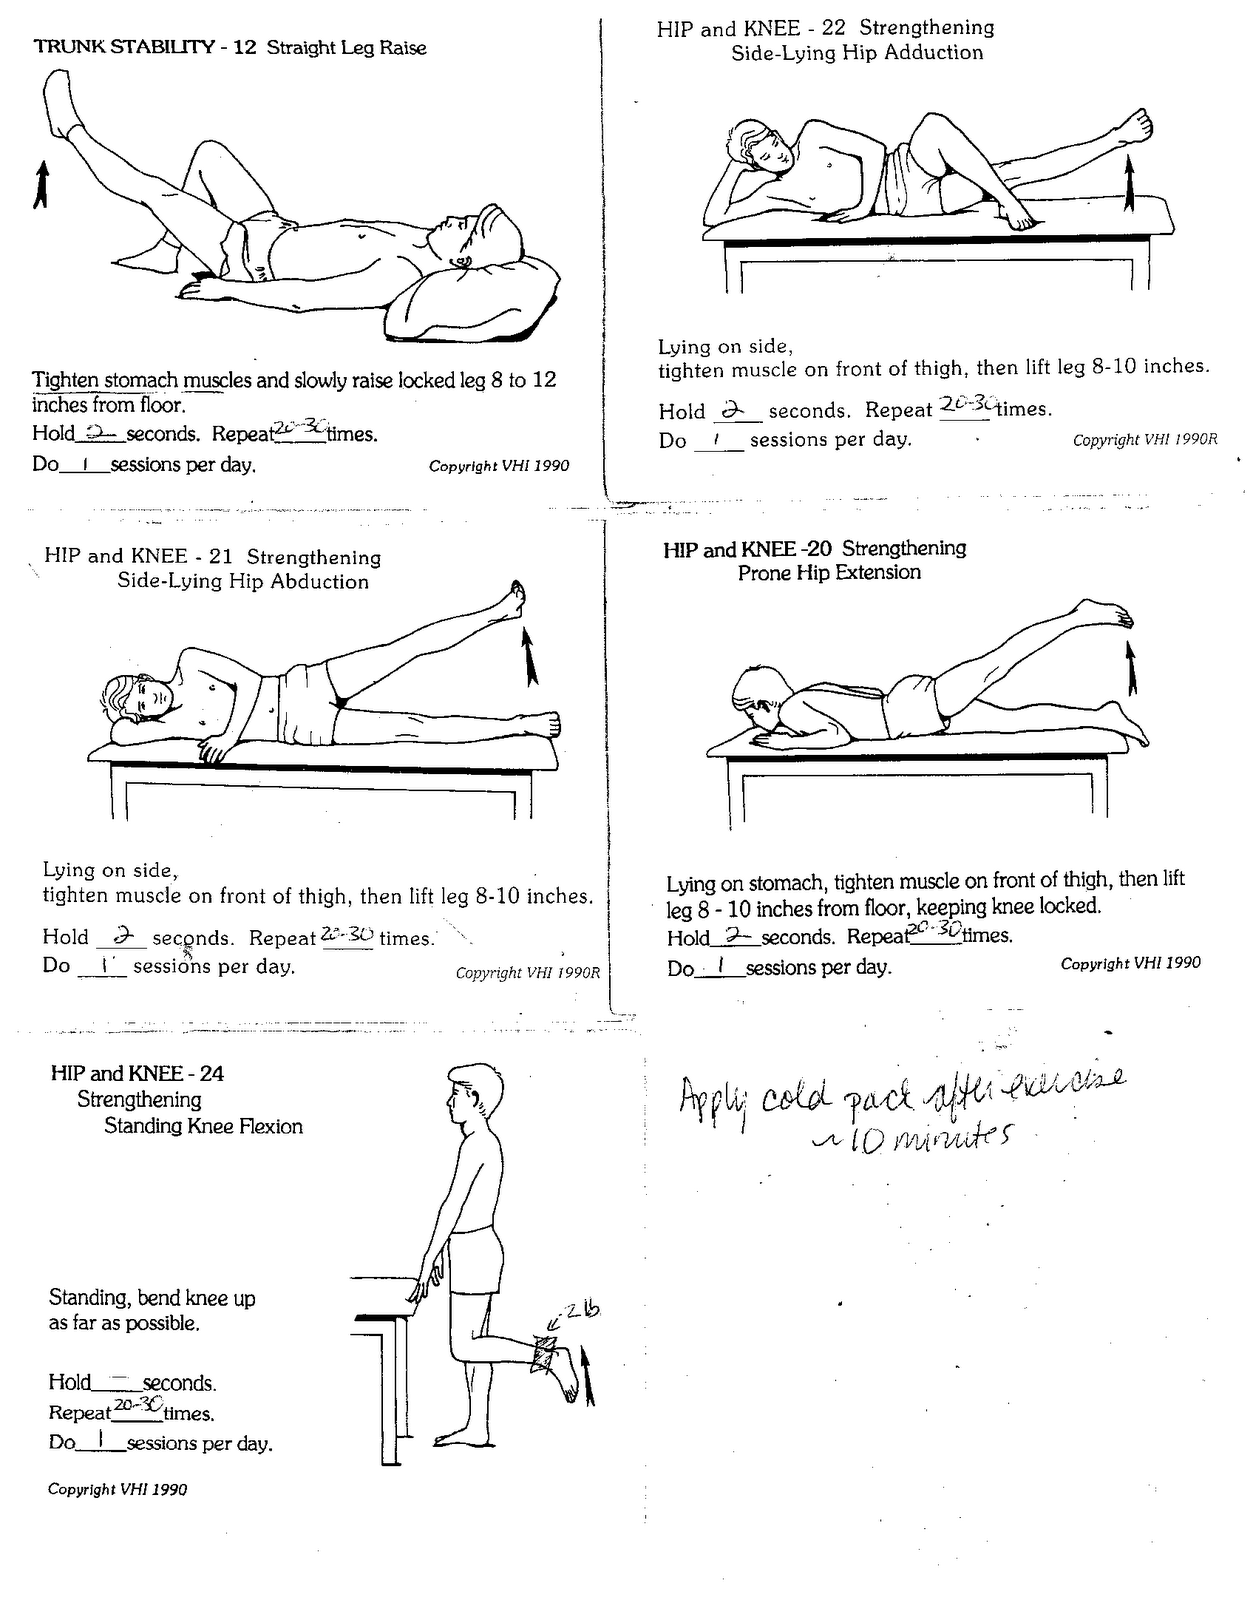 Exercise for physical therapy - Knee Exercises Illustrated Therapeutic Strengthening